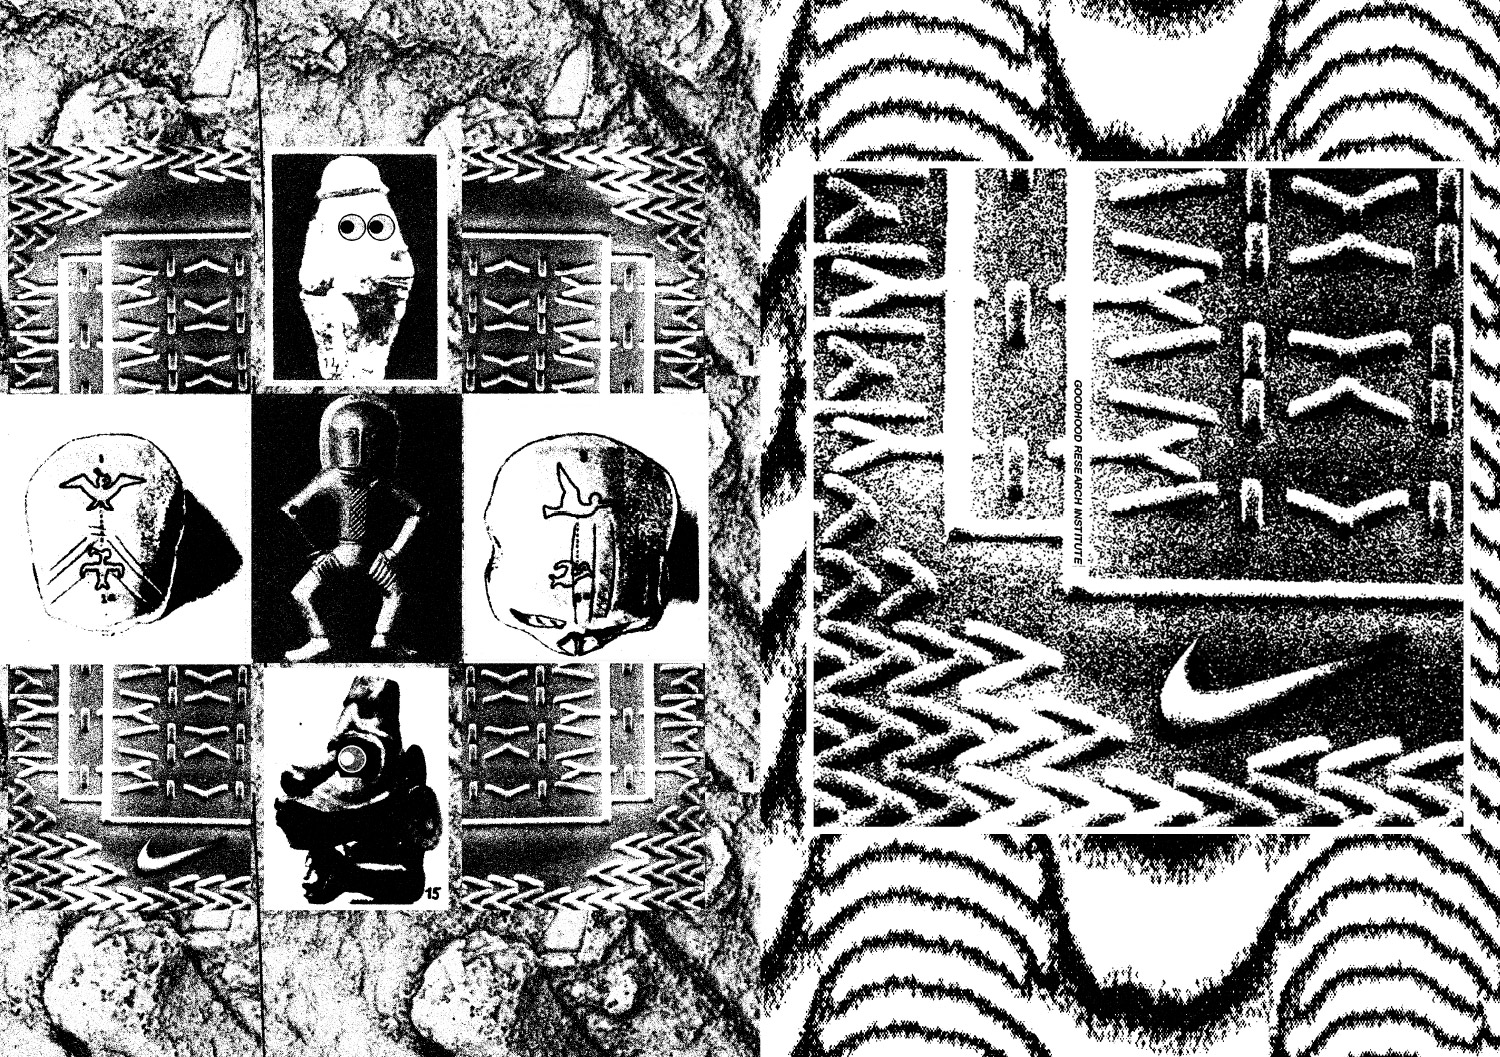 ED_DAVIS_FOR_WEB_WIDE_3_V2.jpg